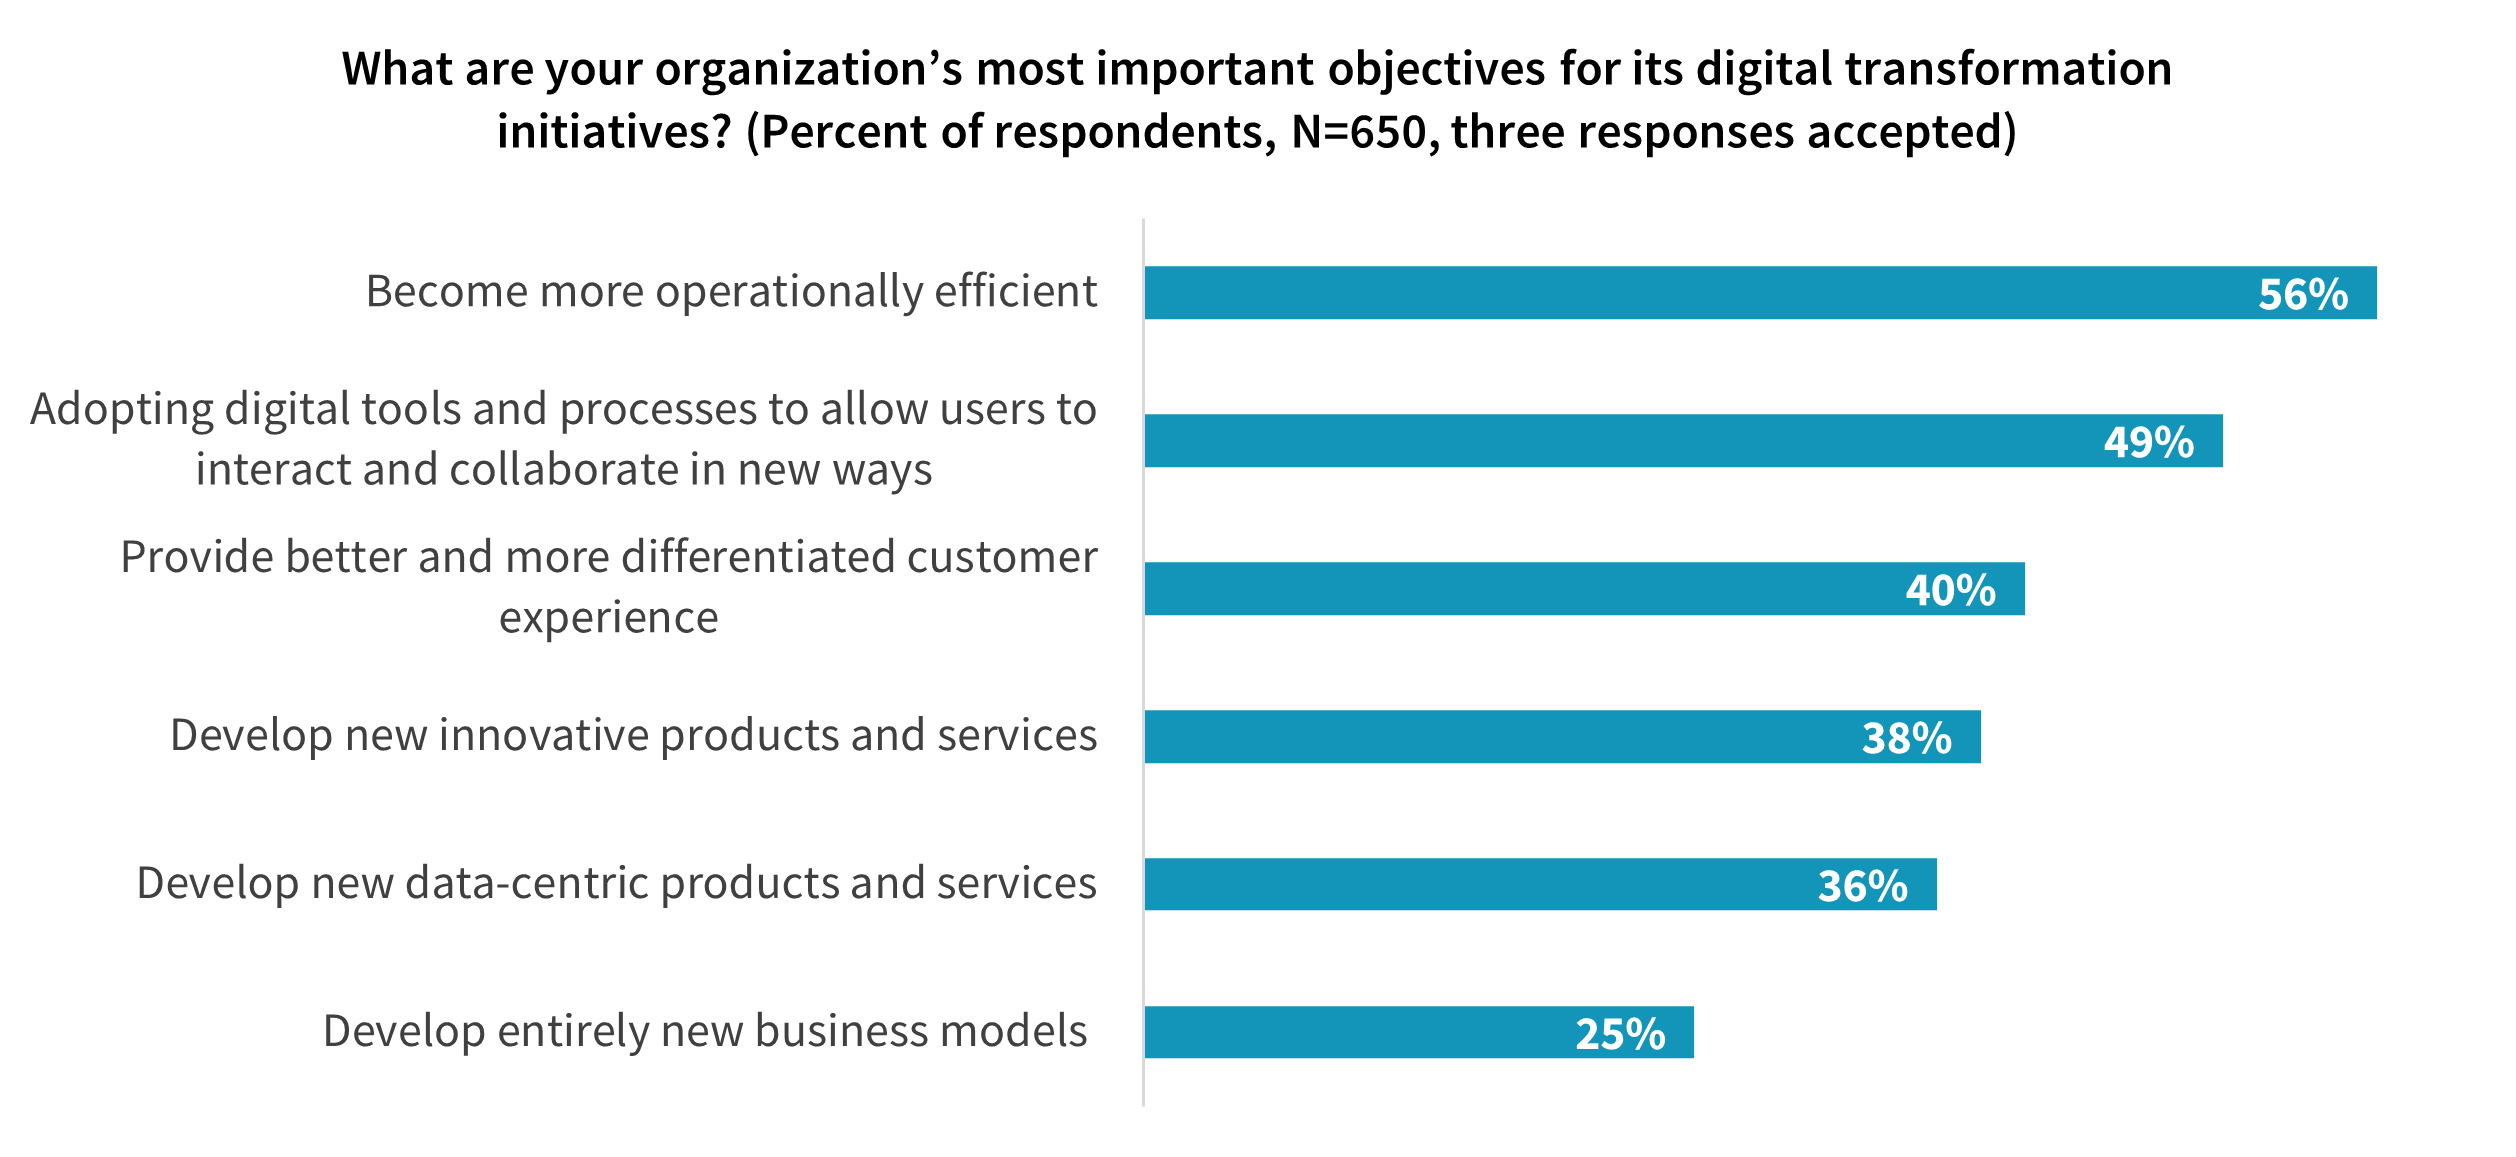 Public Cloud and Digital Transformation Initiatives for 2021